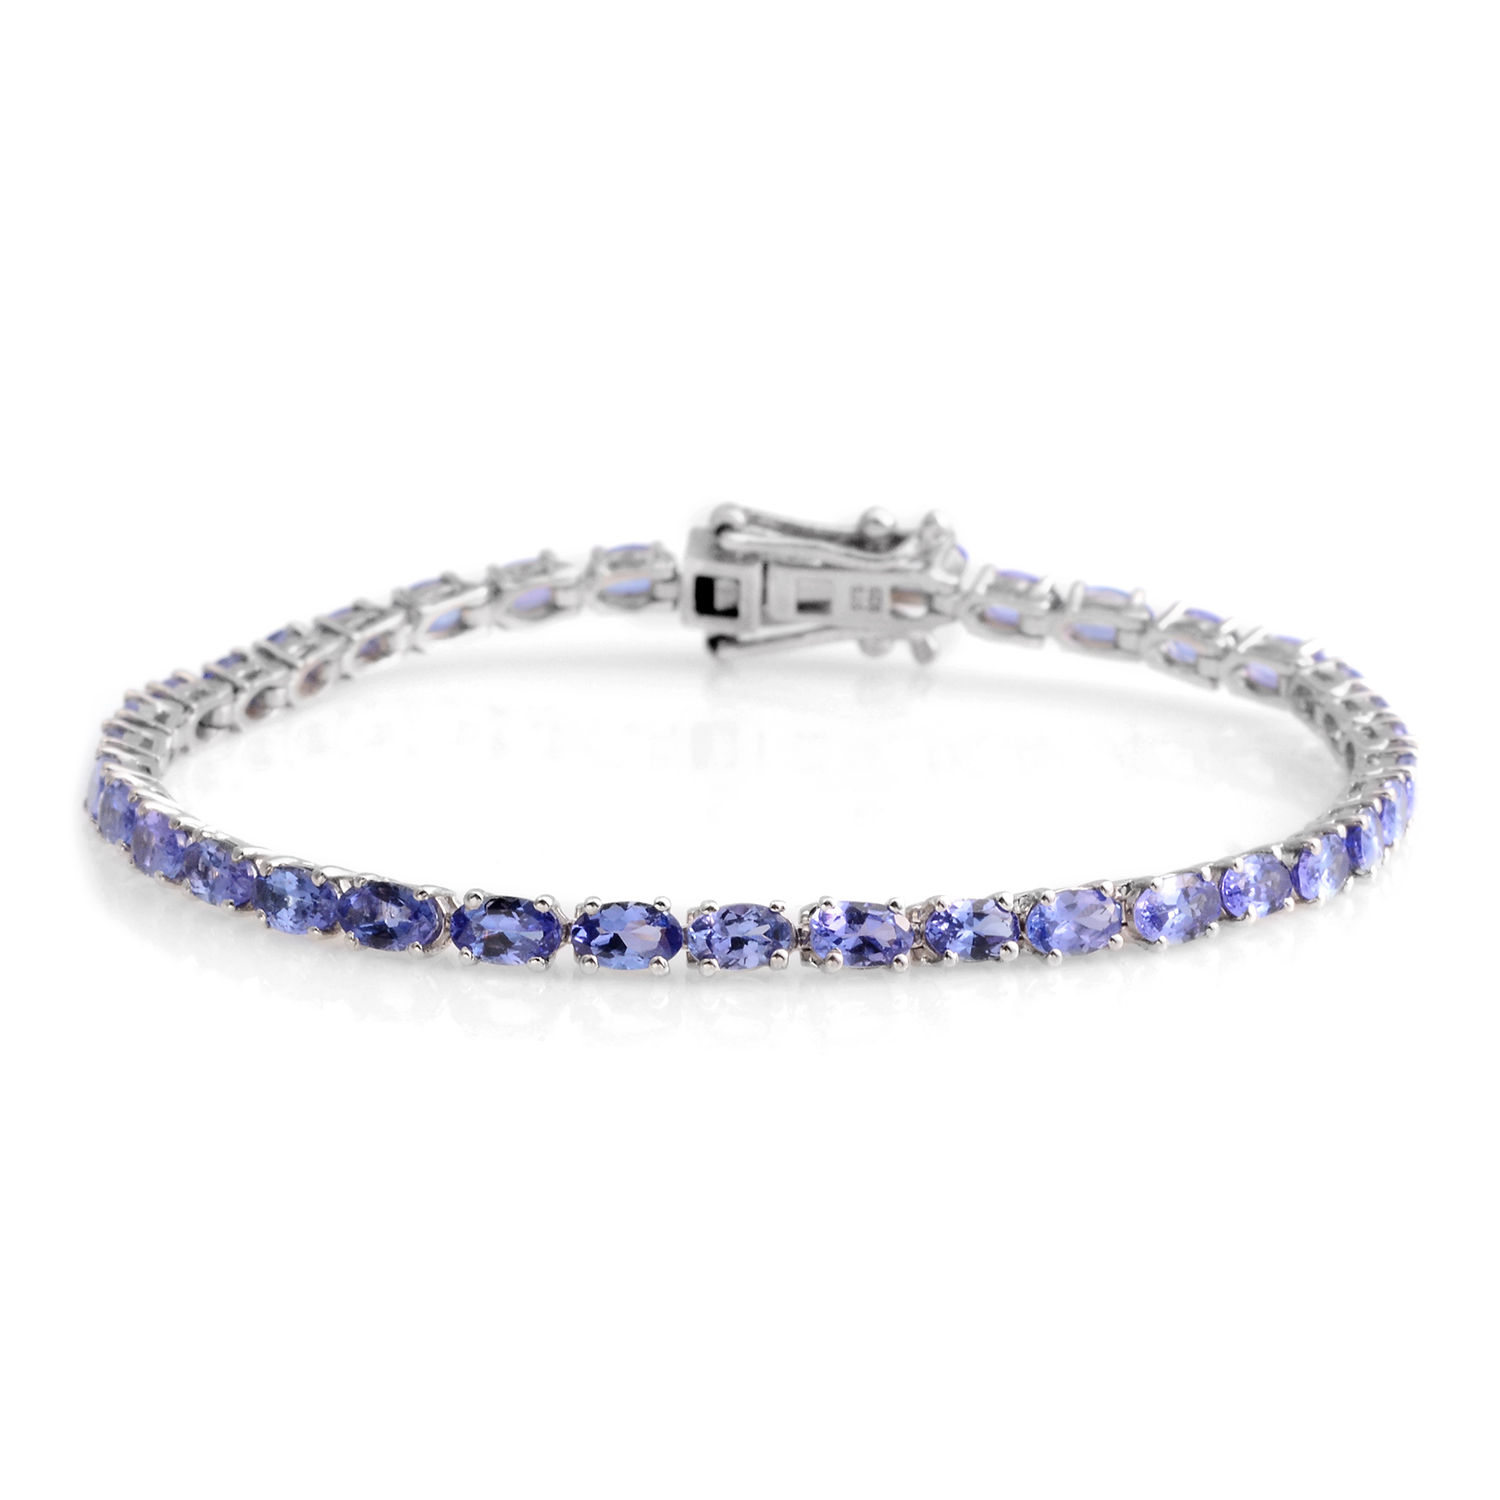 overstock watches amethyst congo today jewelry tanzanite free valitutti bracelet shipping michael product bangle palladium silver